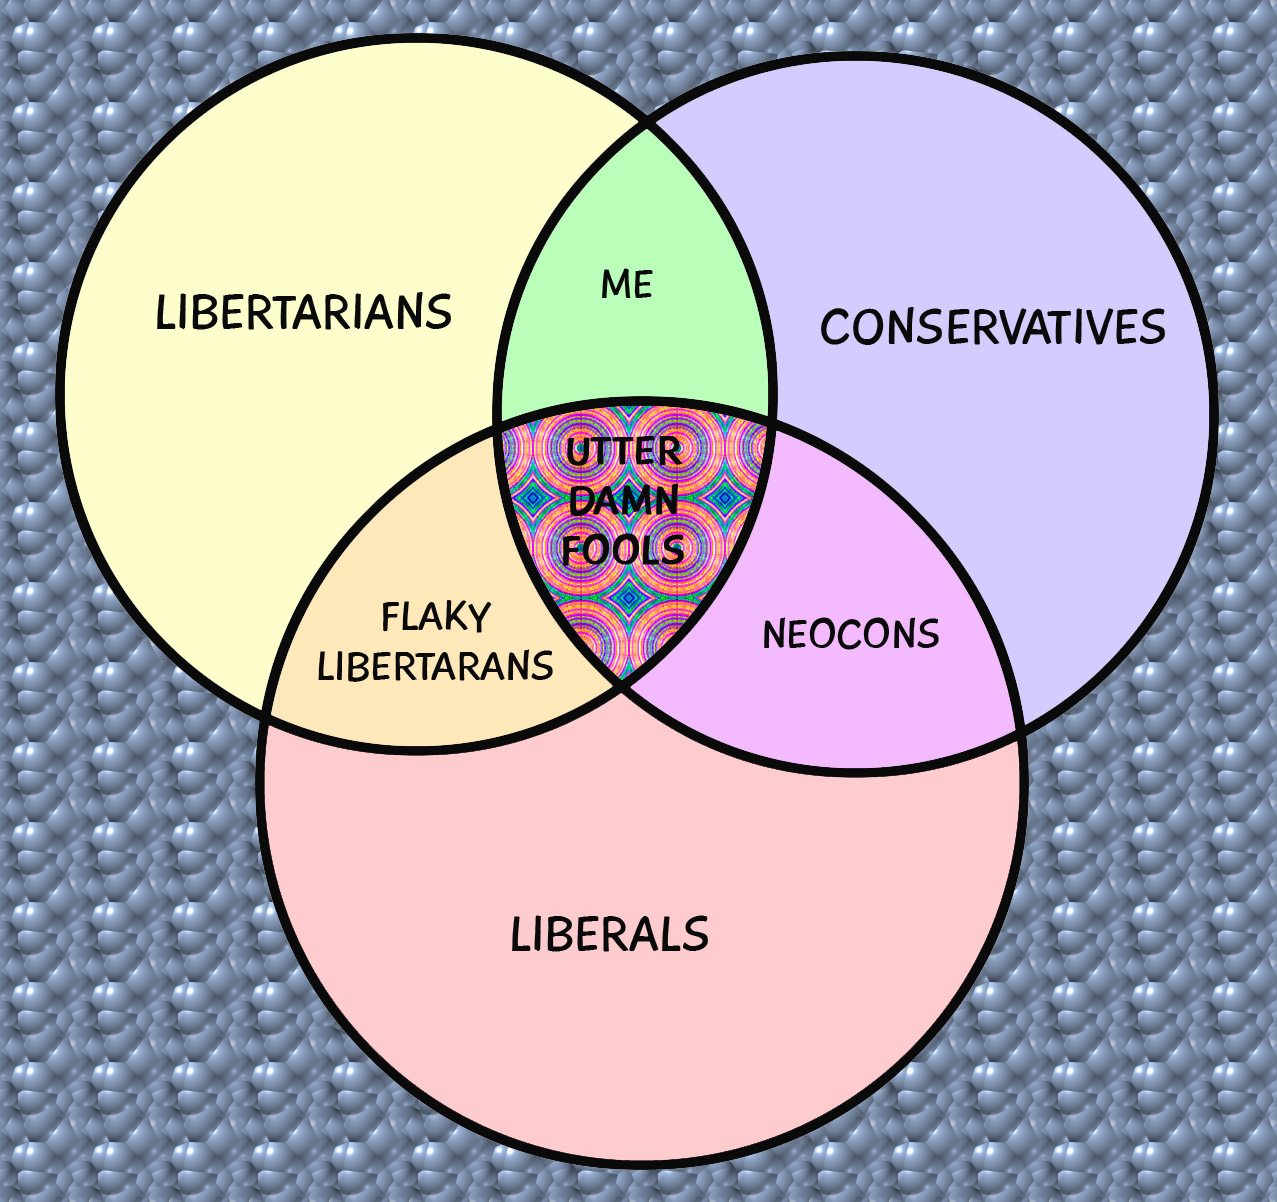 100 free venn diagram of capitalism and commun marxism vs capitalism vs communism venn diagram pooptronica